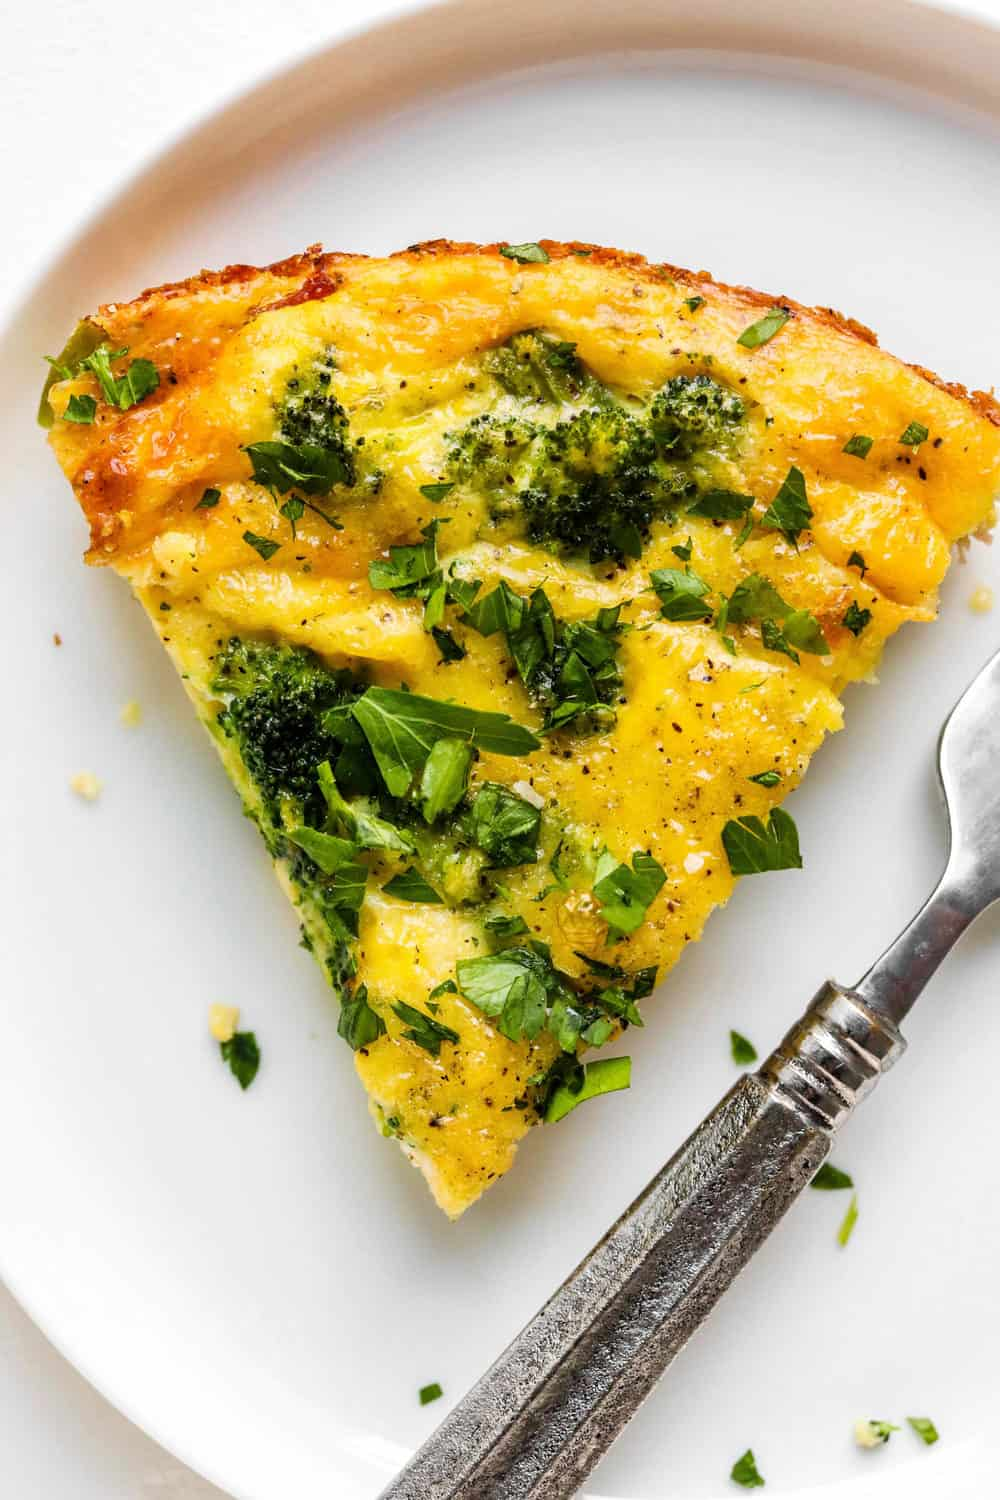 Slice of broccoli quiche on a white plate with a fork next to it.